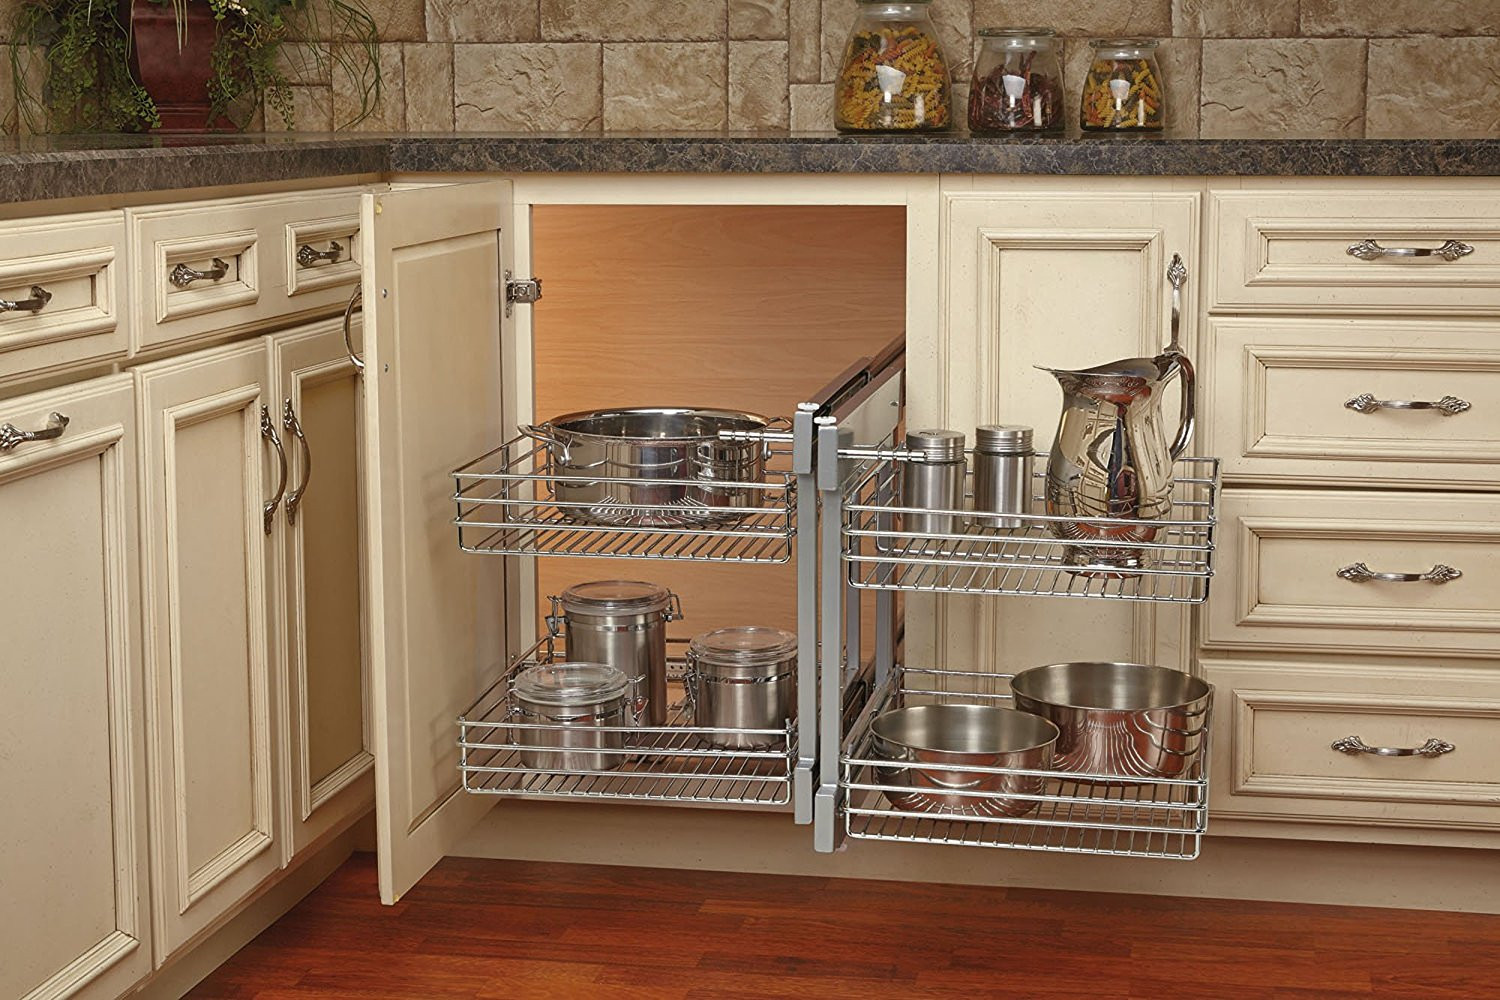 Best ideas about Blind Corner Cabinet . Save or Pin Pantry Design Details Now.